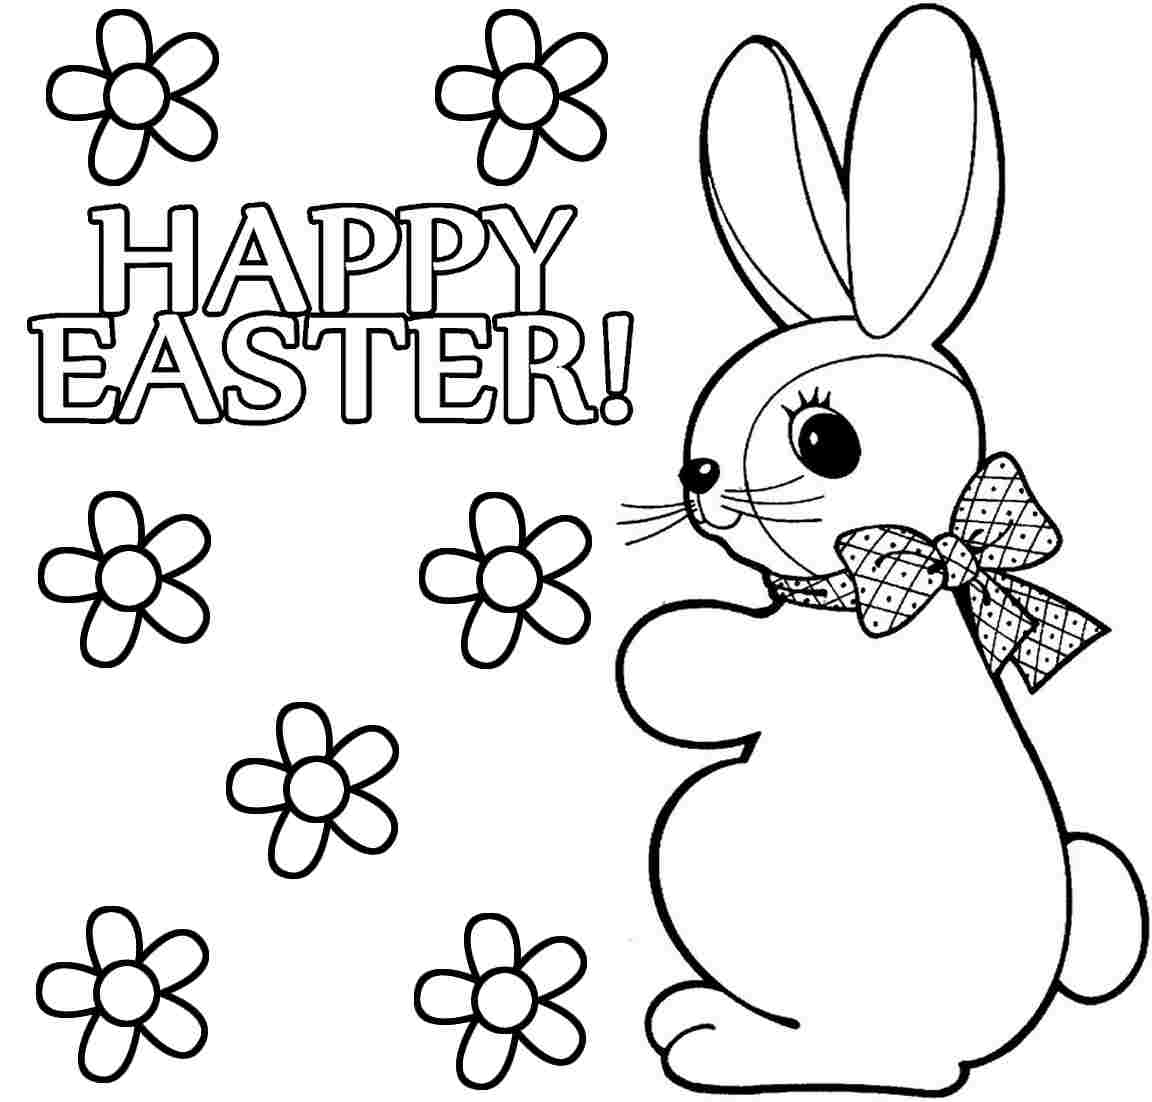 Easter Color Pages Printable Coloring and Coloring Download Of Easter Coloring Pages for Kids Crazy Little Projects Printable